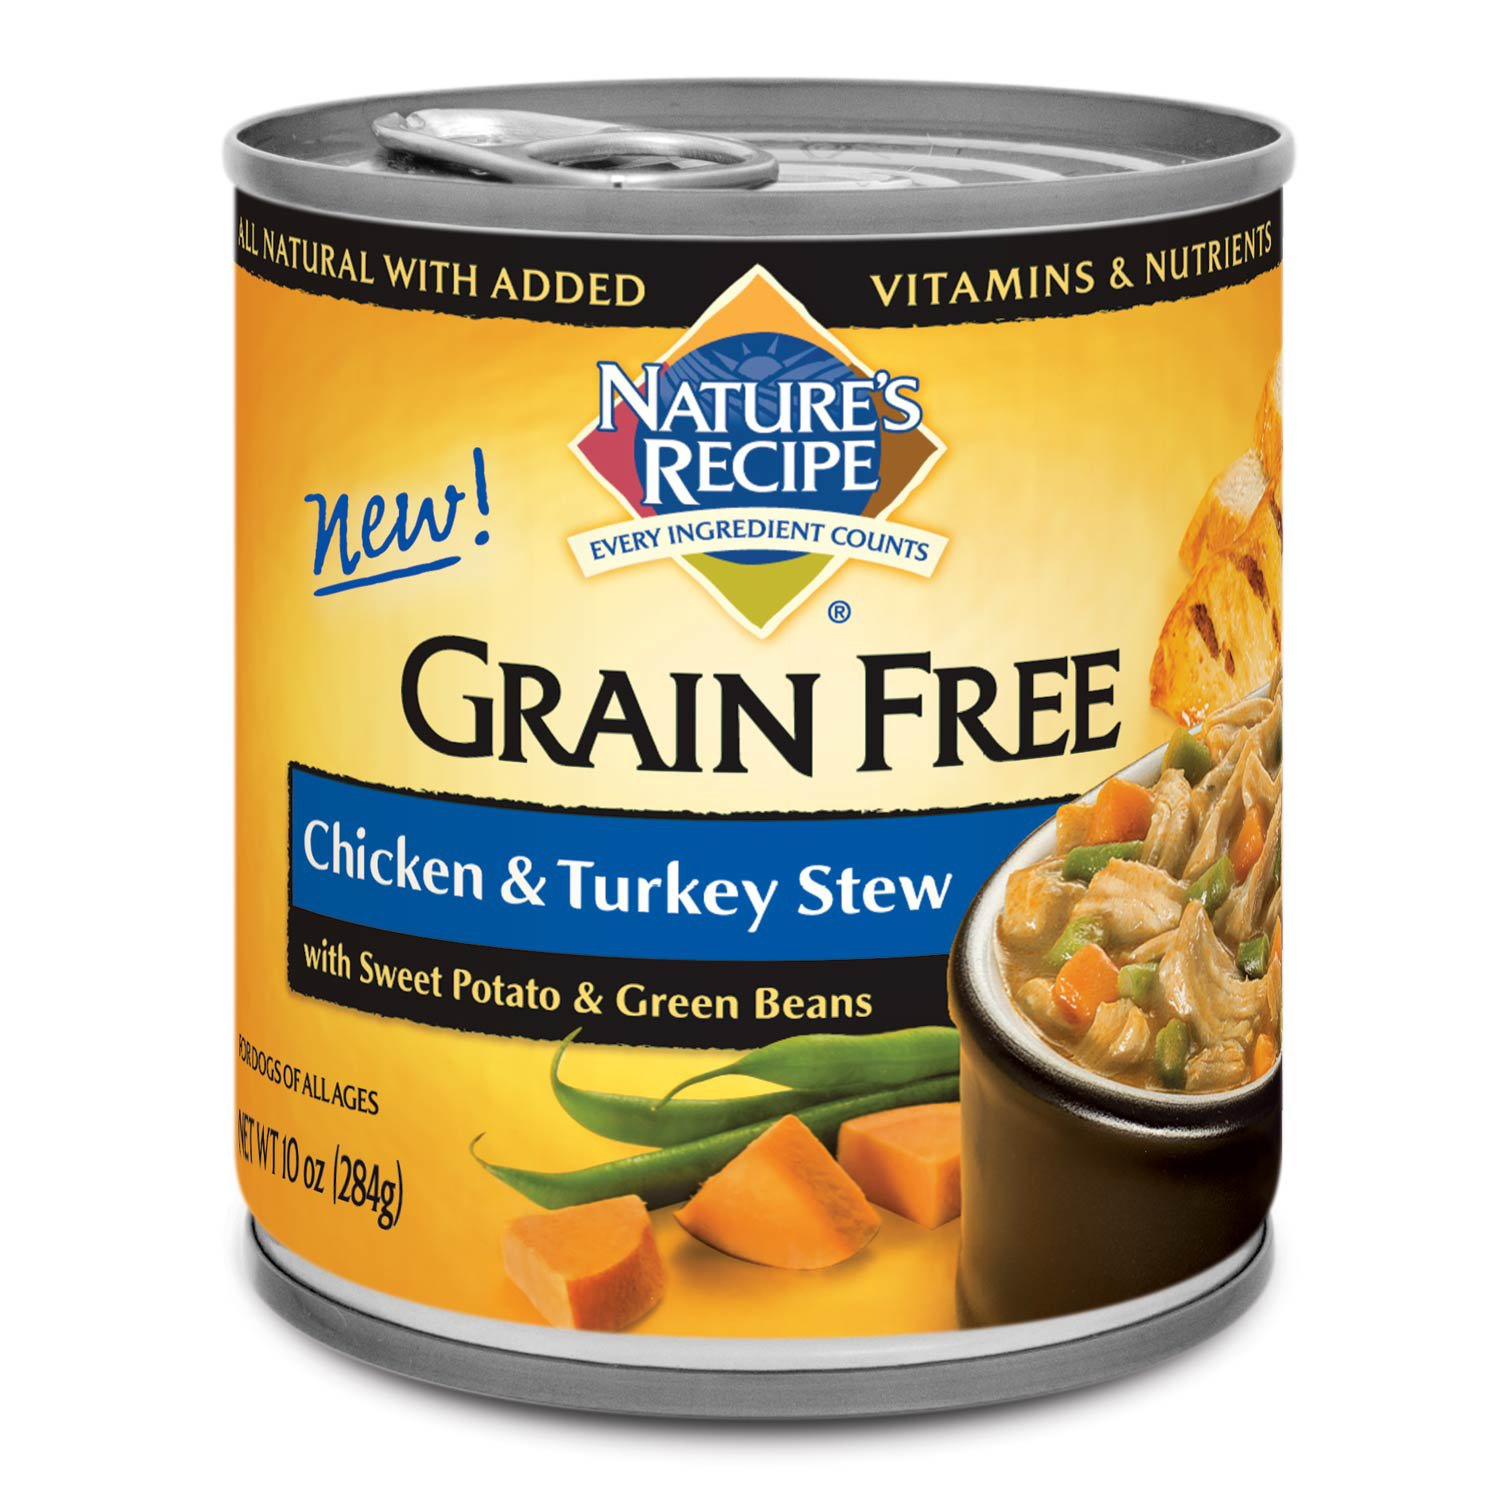 Natures recipe grain free chicken venison stew canned dog food natures recipe grain free chicken turkey stew canned dog food forumfinder Image collections